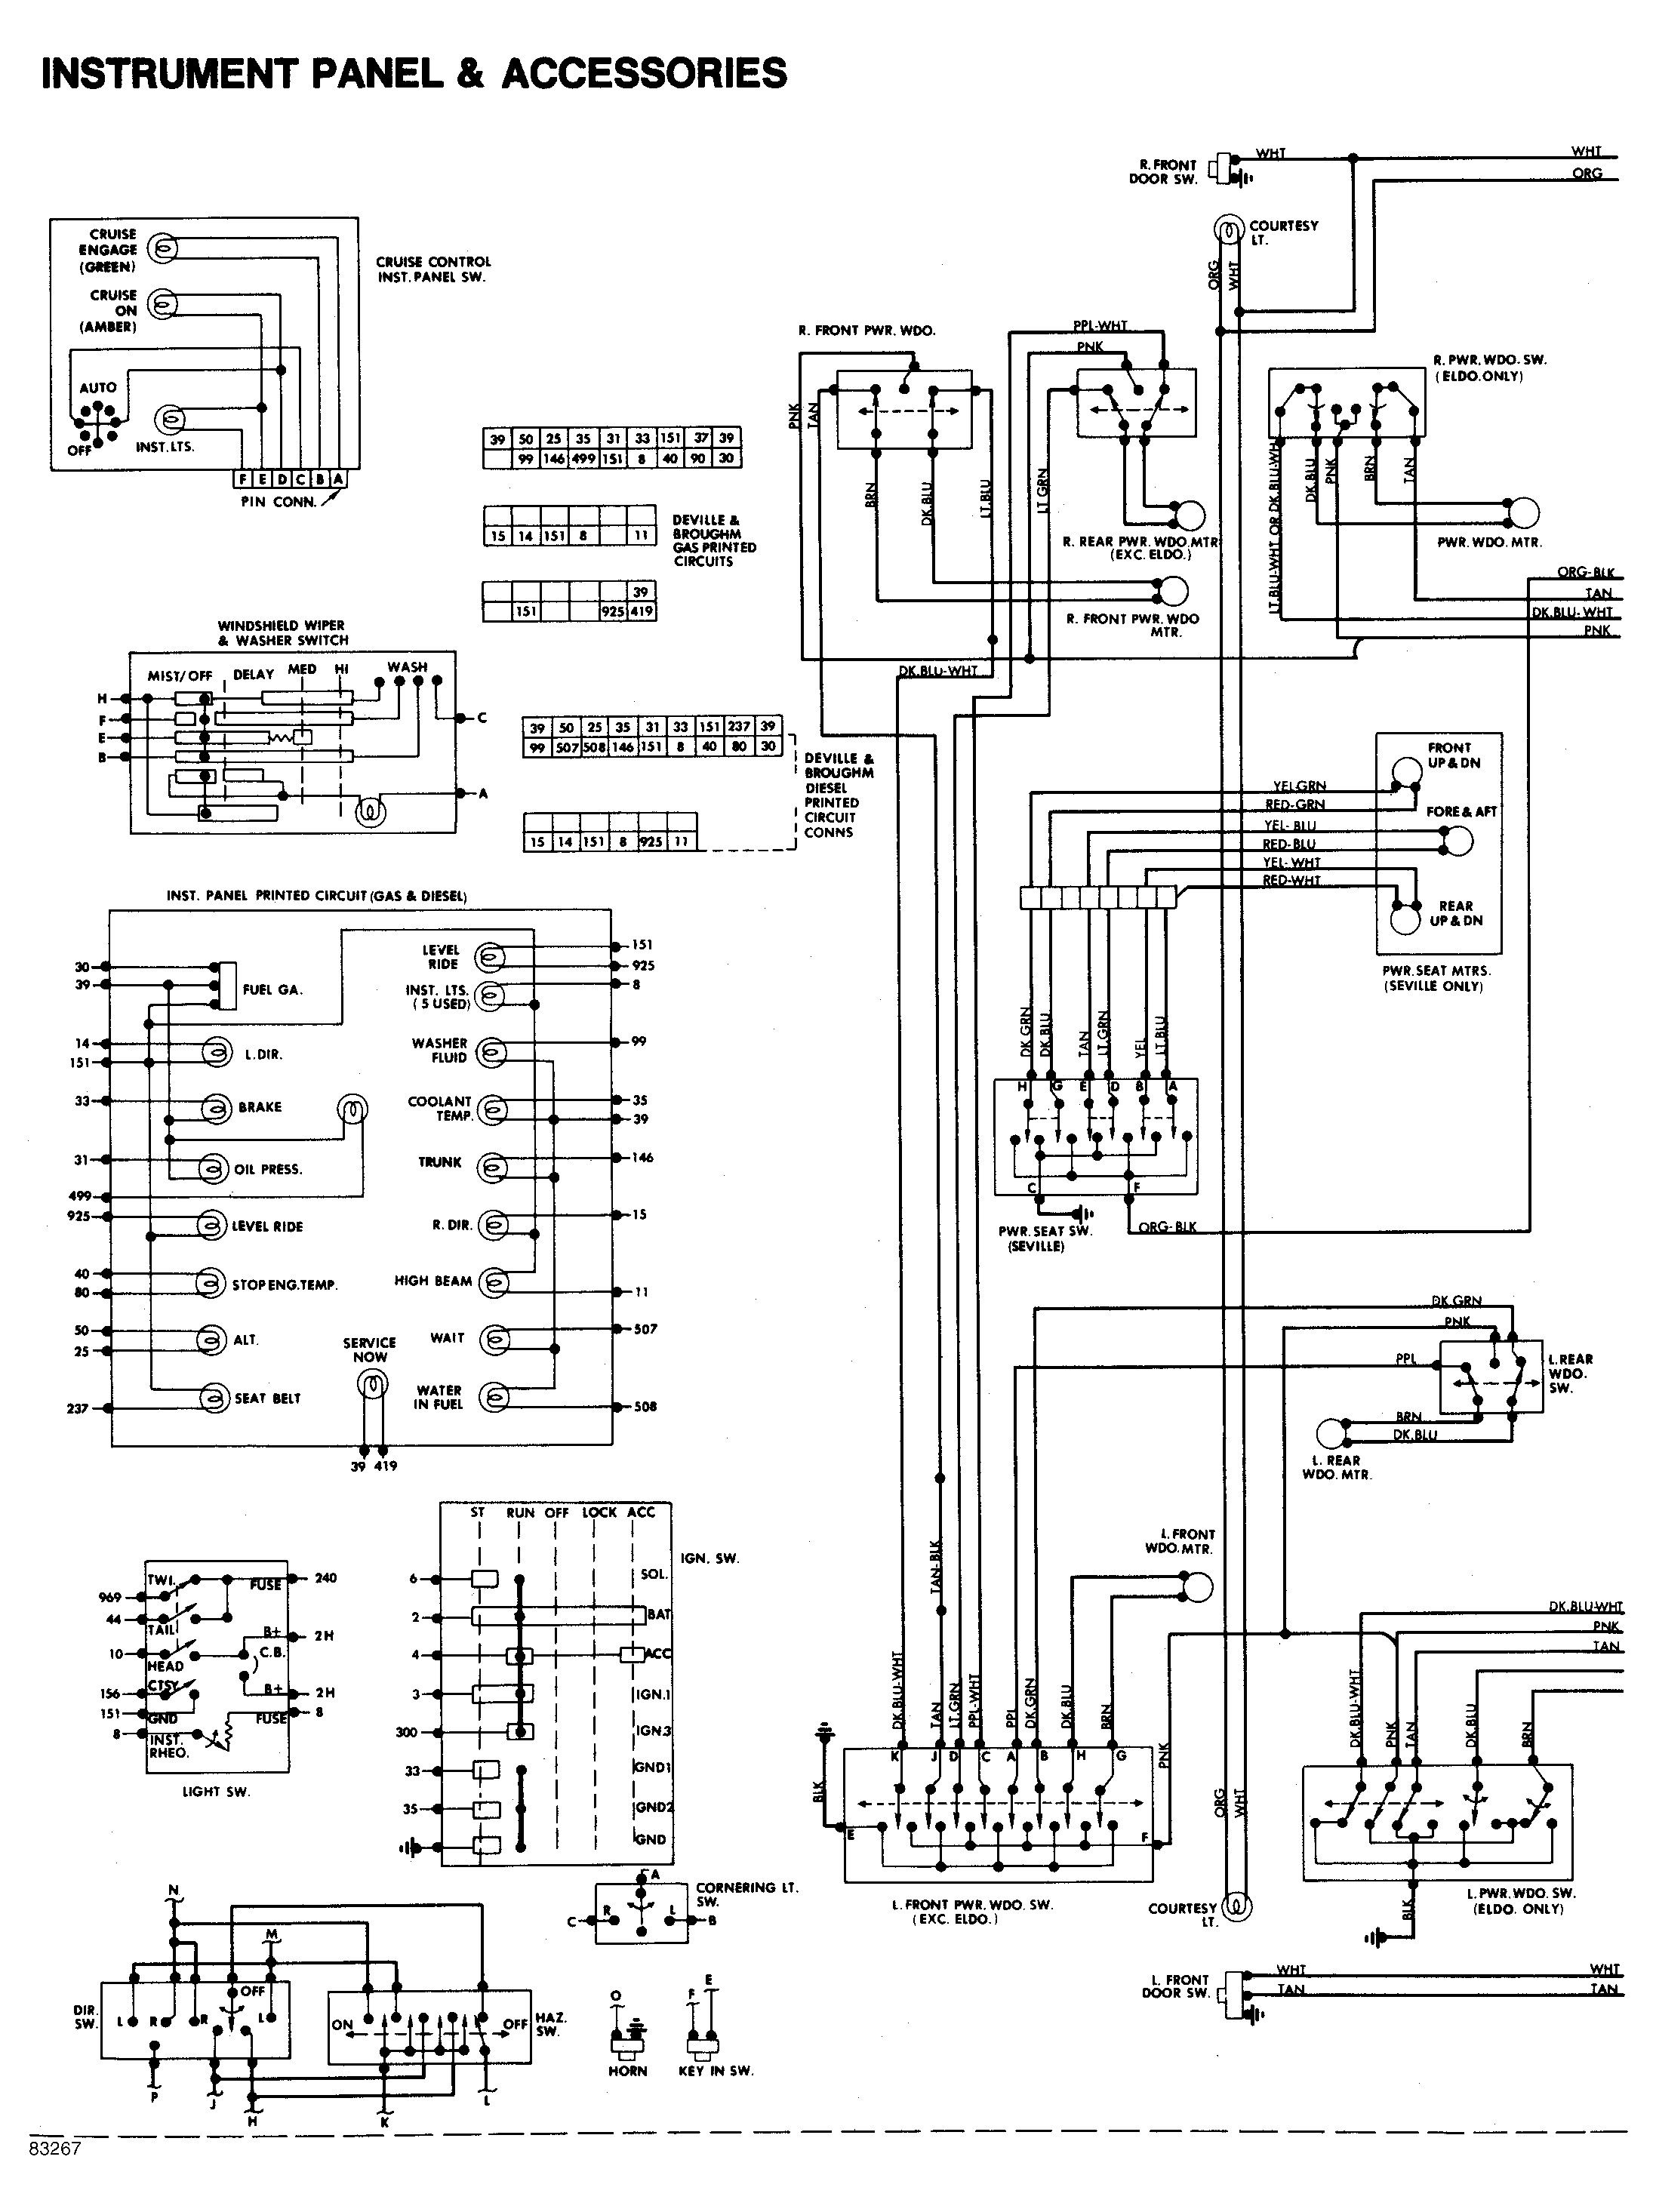 2000 daewoo lanos wiring diagram schematic diagram